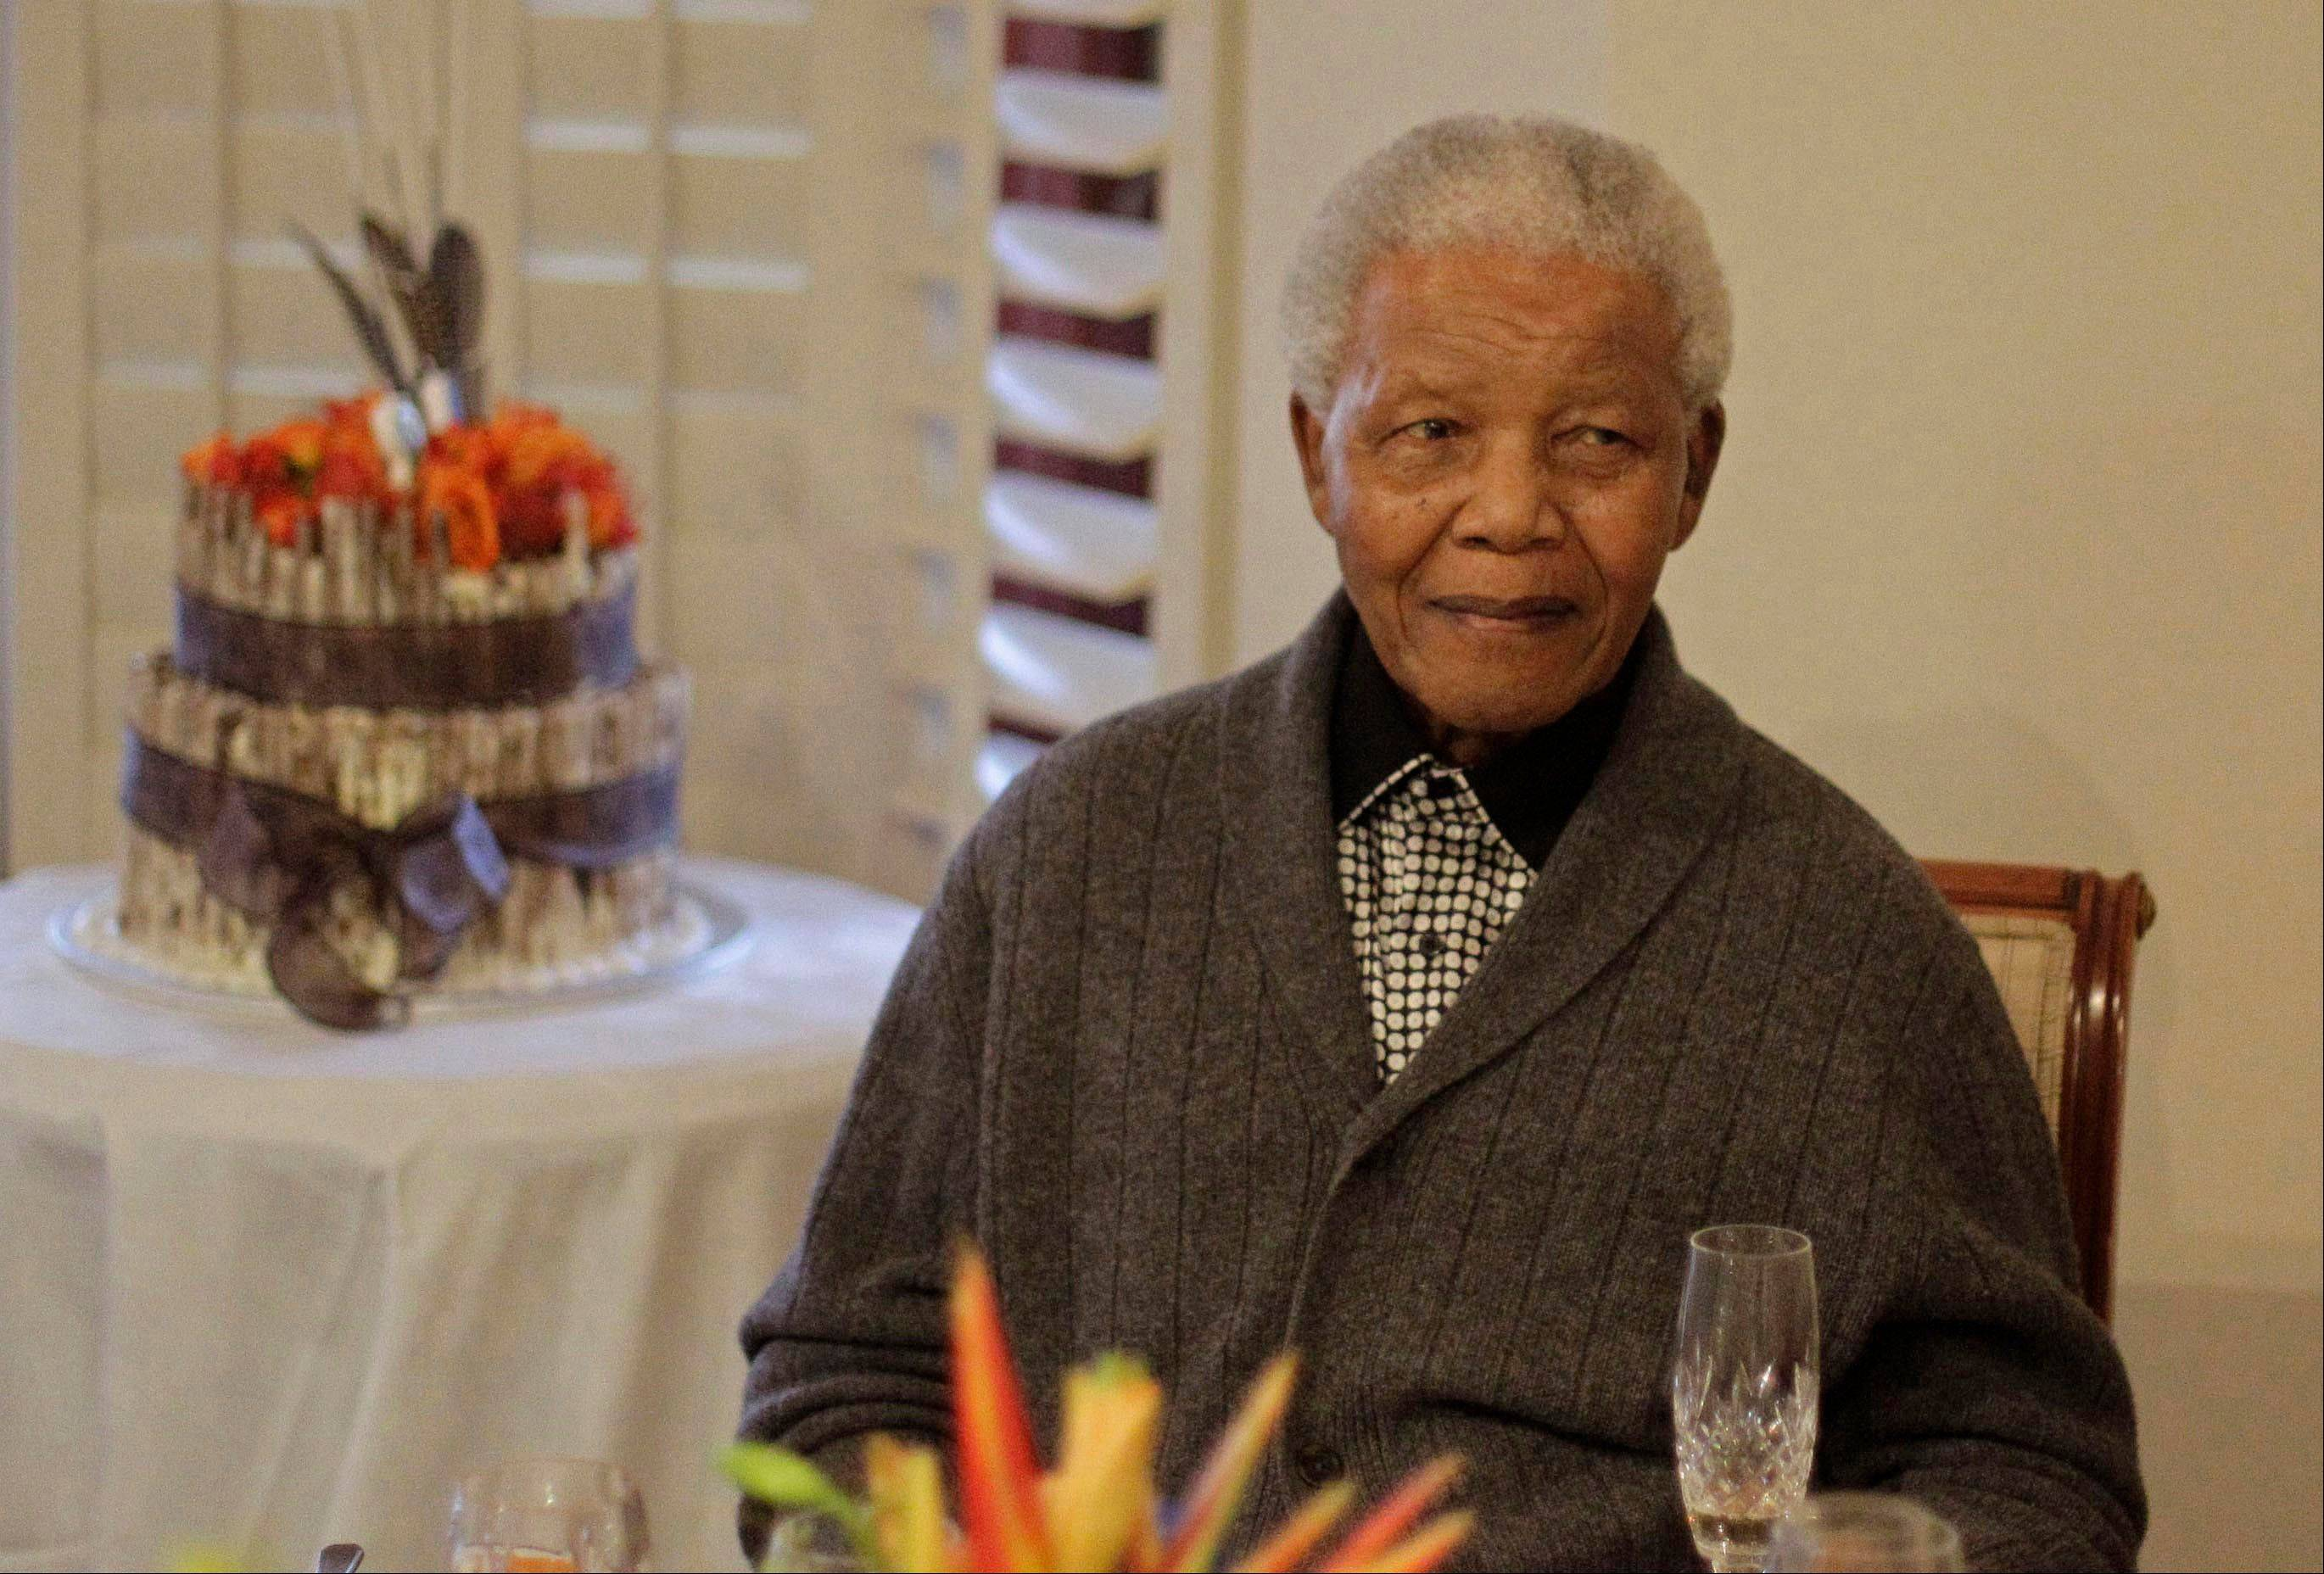 Associated Press/July 18, 2012  Former South African President Nelson Mandela celebrates his 94th birthday with family in Qunu, South Africa.